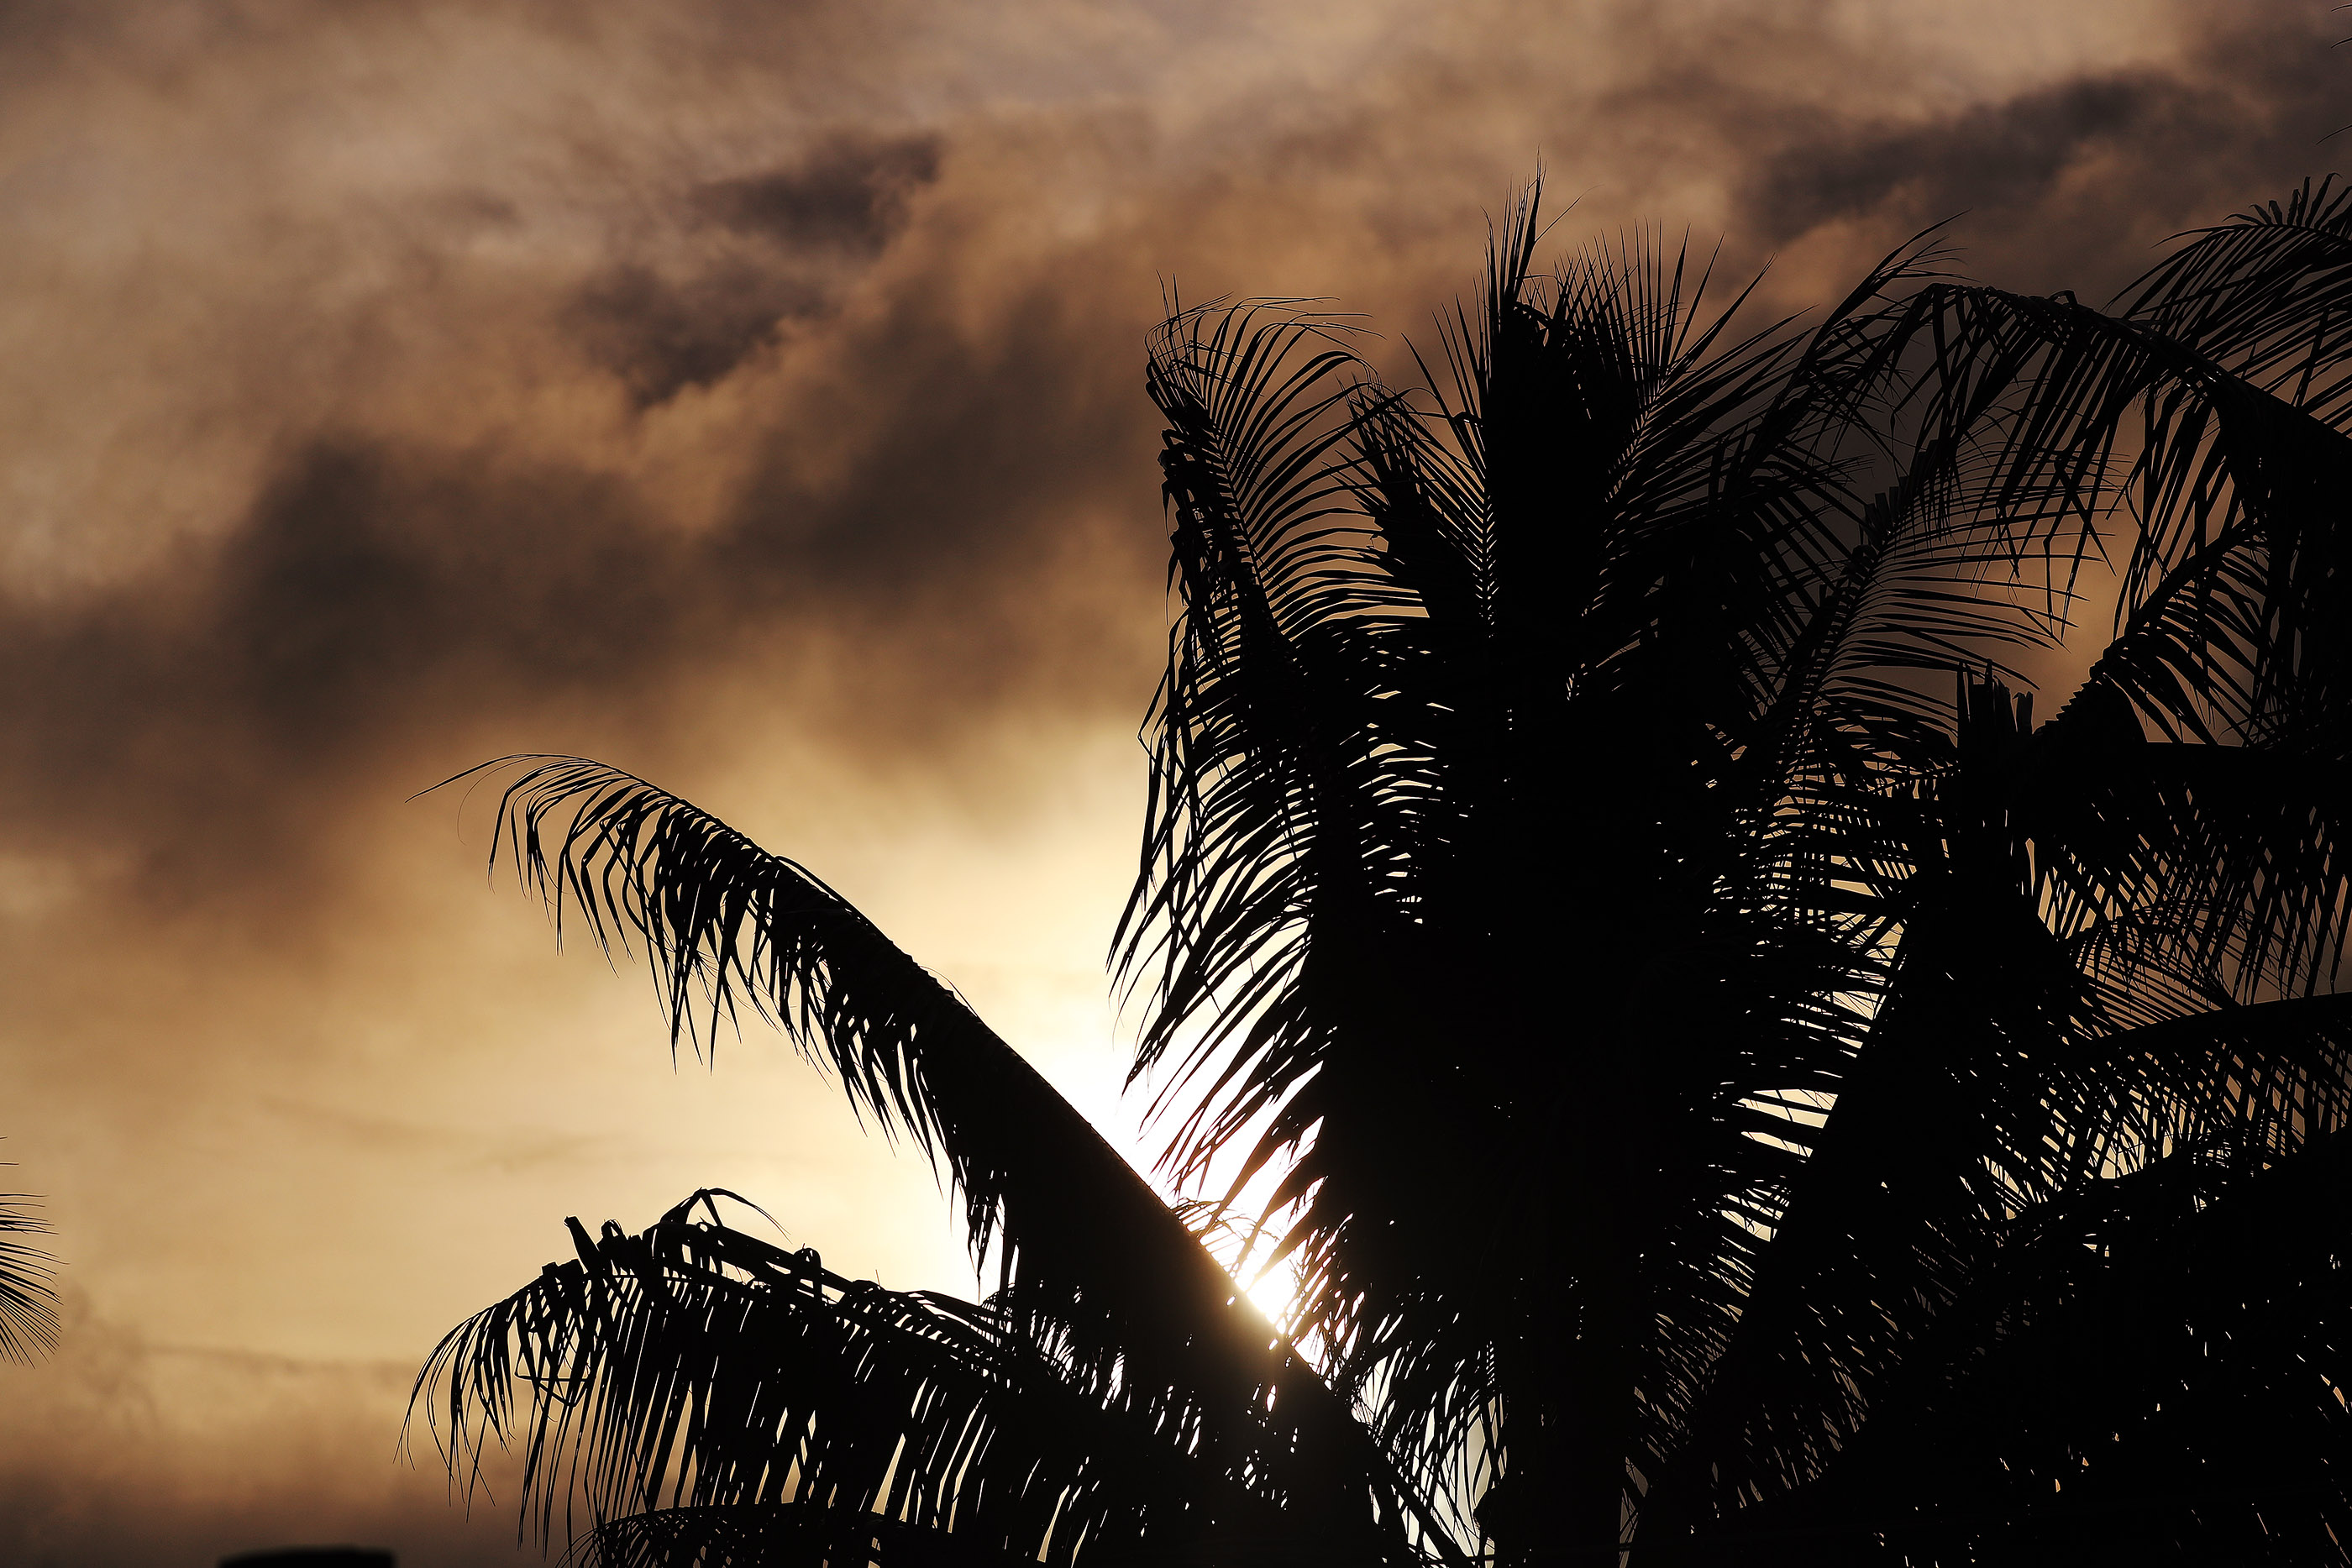 Clouds darken the evening sky during a devotional featuring President Russell M. Nelson of The Church of Jesus Christ of Latter-day Saints and his wife, Sister Wendy Nelson, in Nausori, Fiji on May 22, 2019.